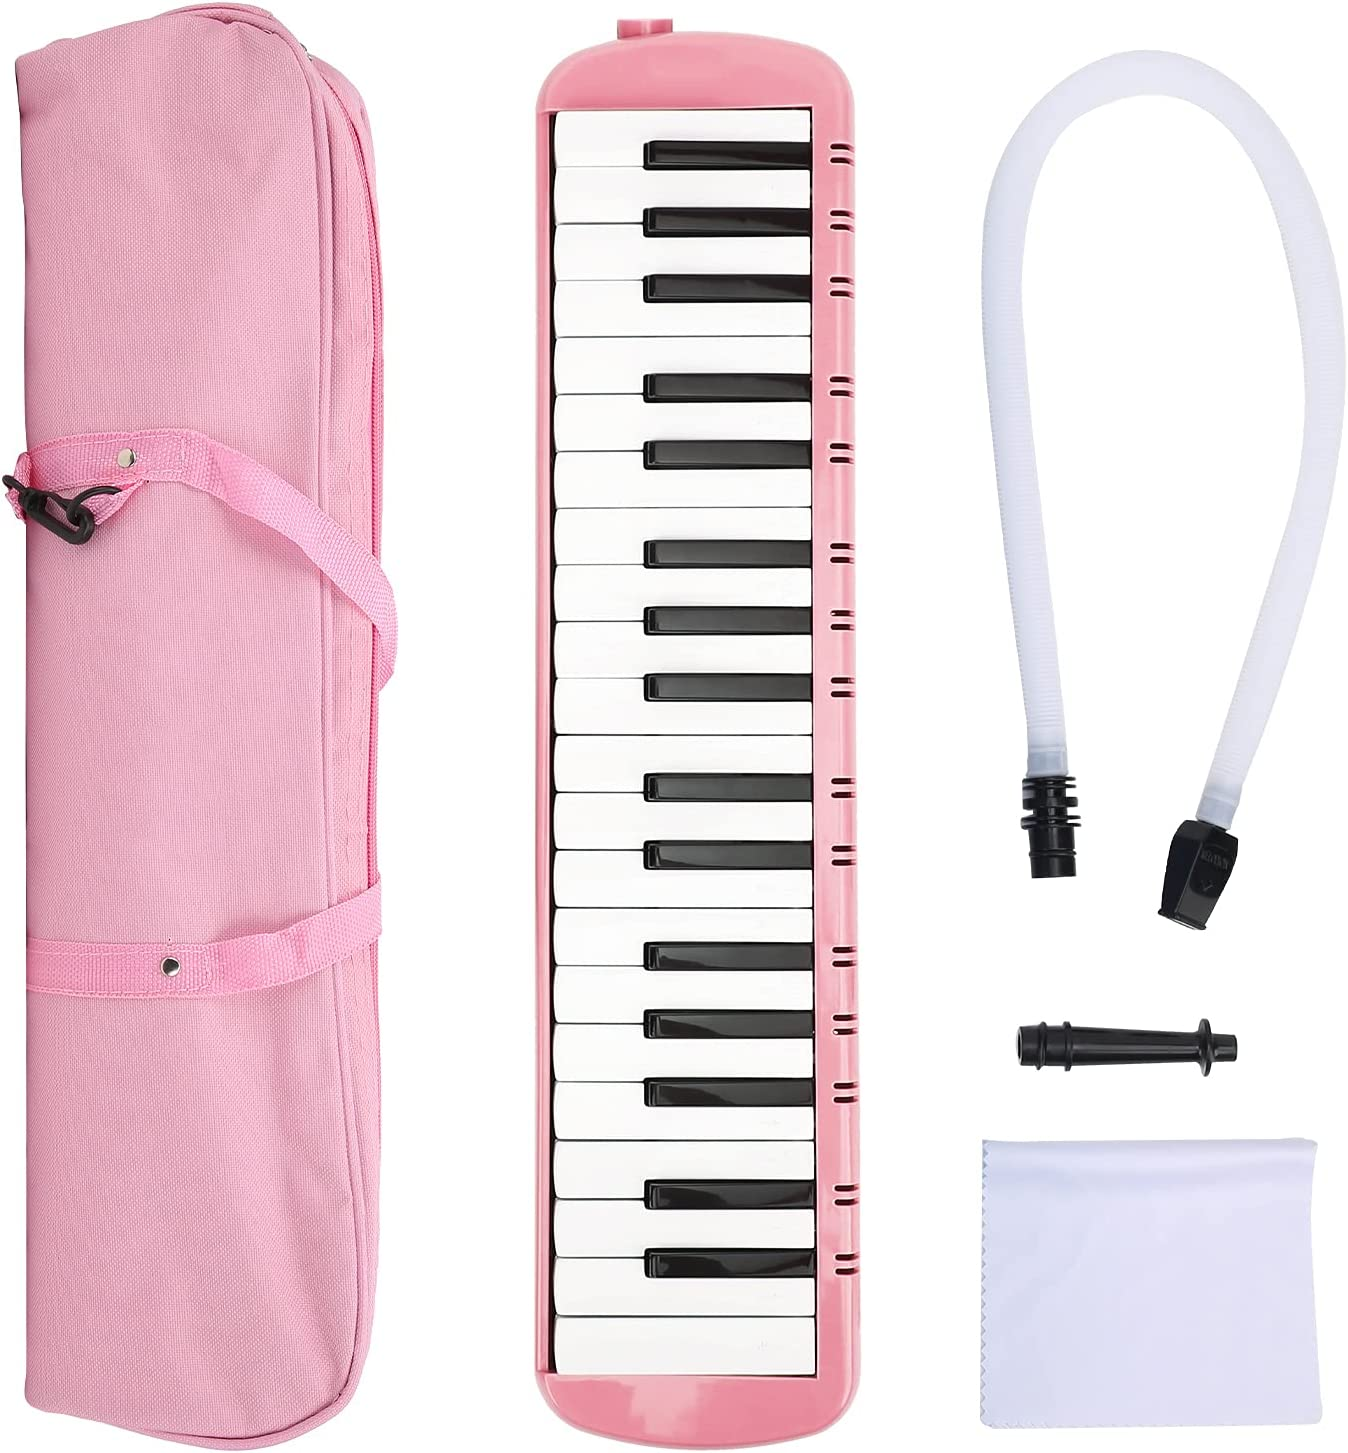 Direct sale of manufacturer sold out Melodica Instrument Keyboard 37 Key with Mouthpiece Style Piano